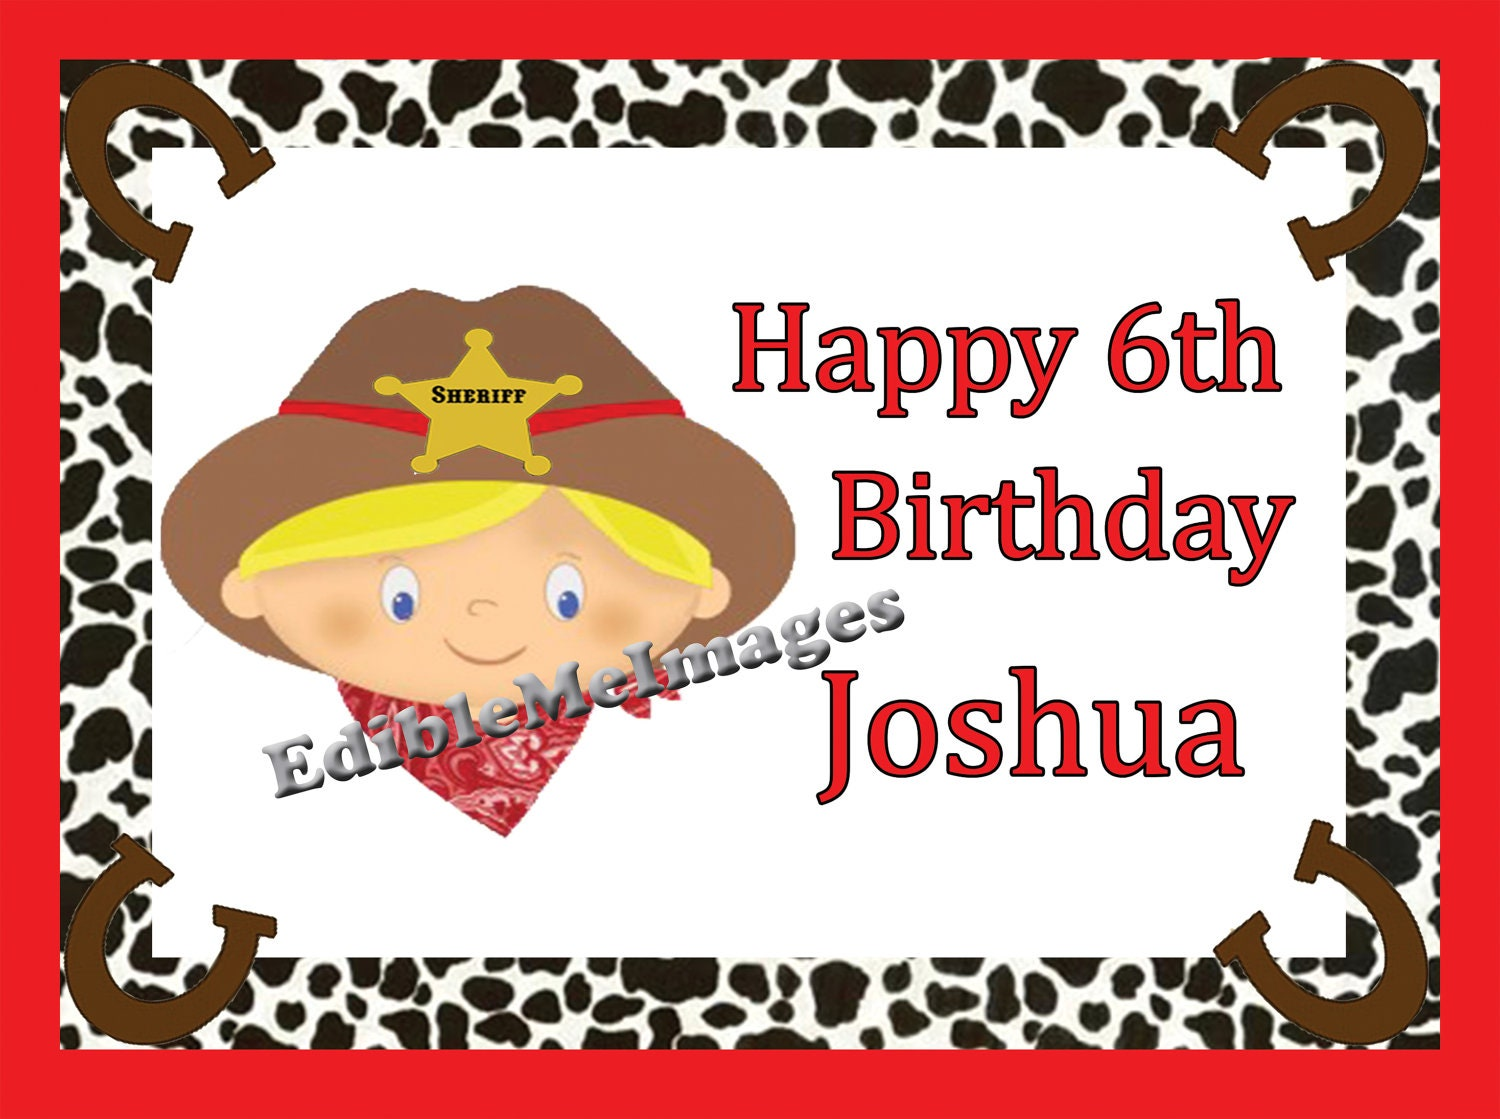 Edible Cake Images Rockingham : Pin Western Edible Image Cake Topper 7 Inch Square Cake on ...